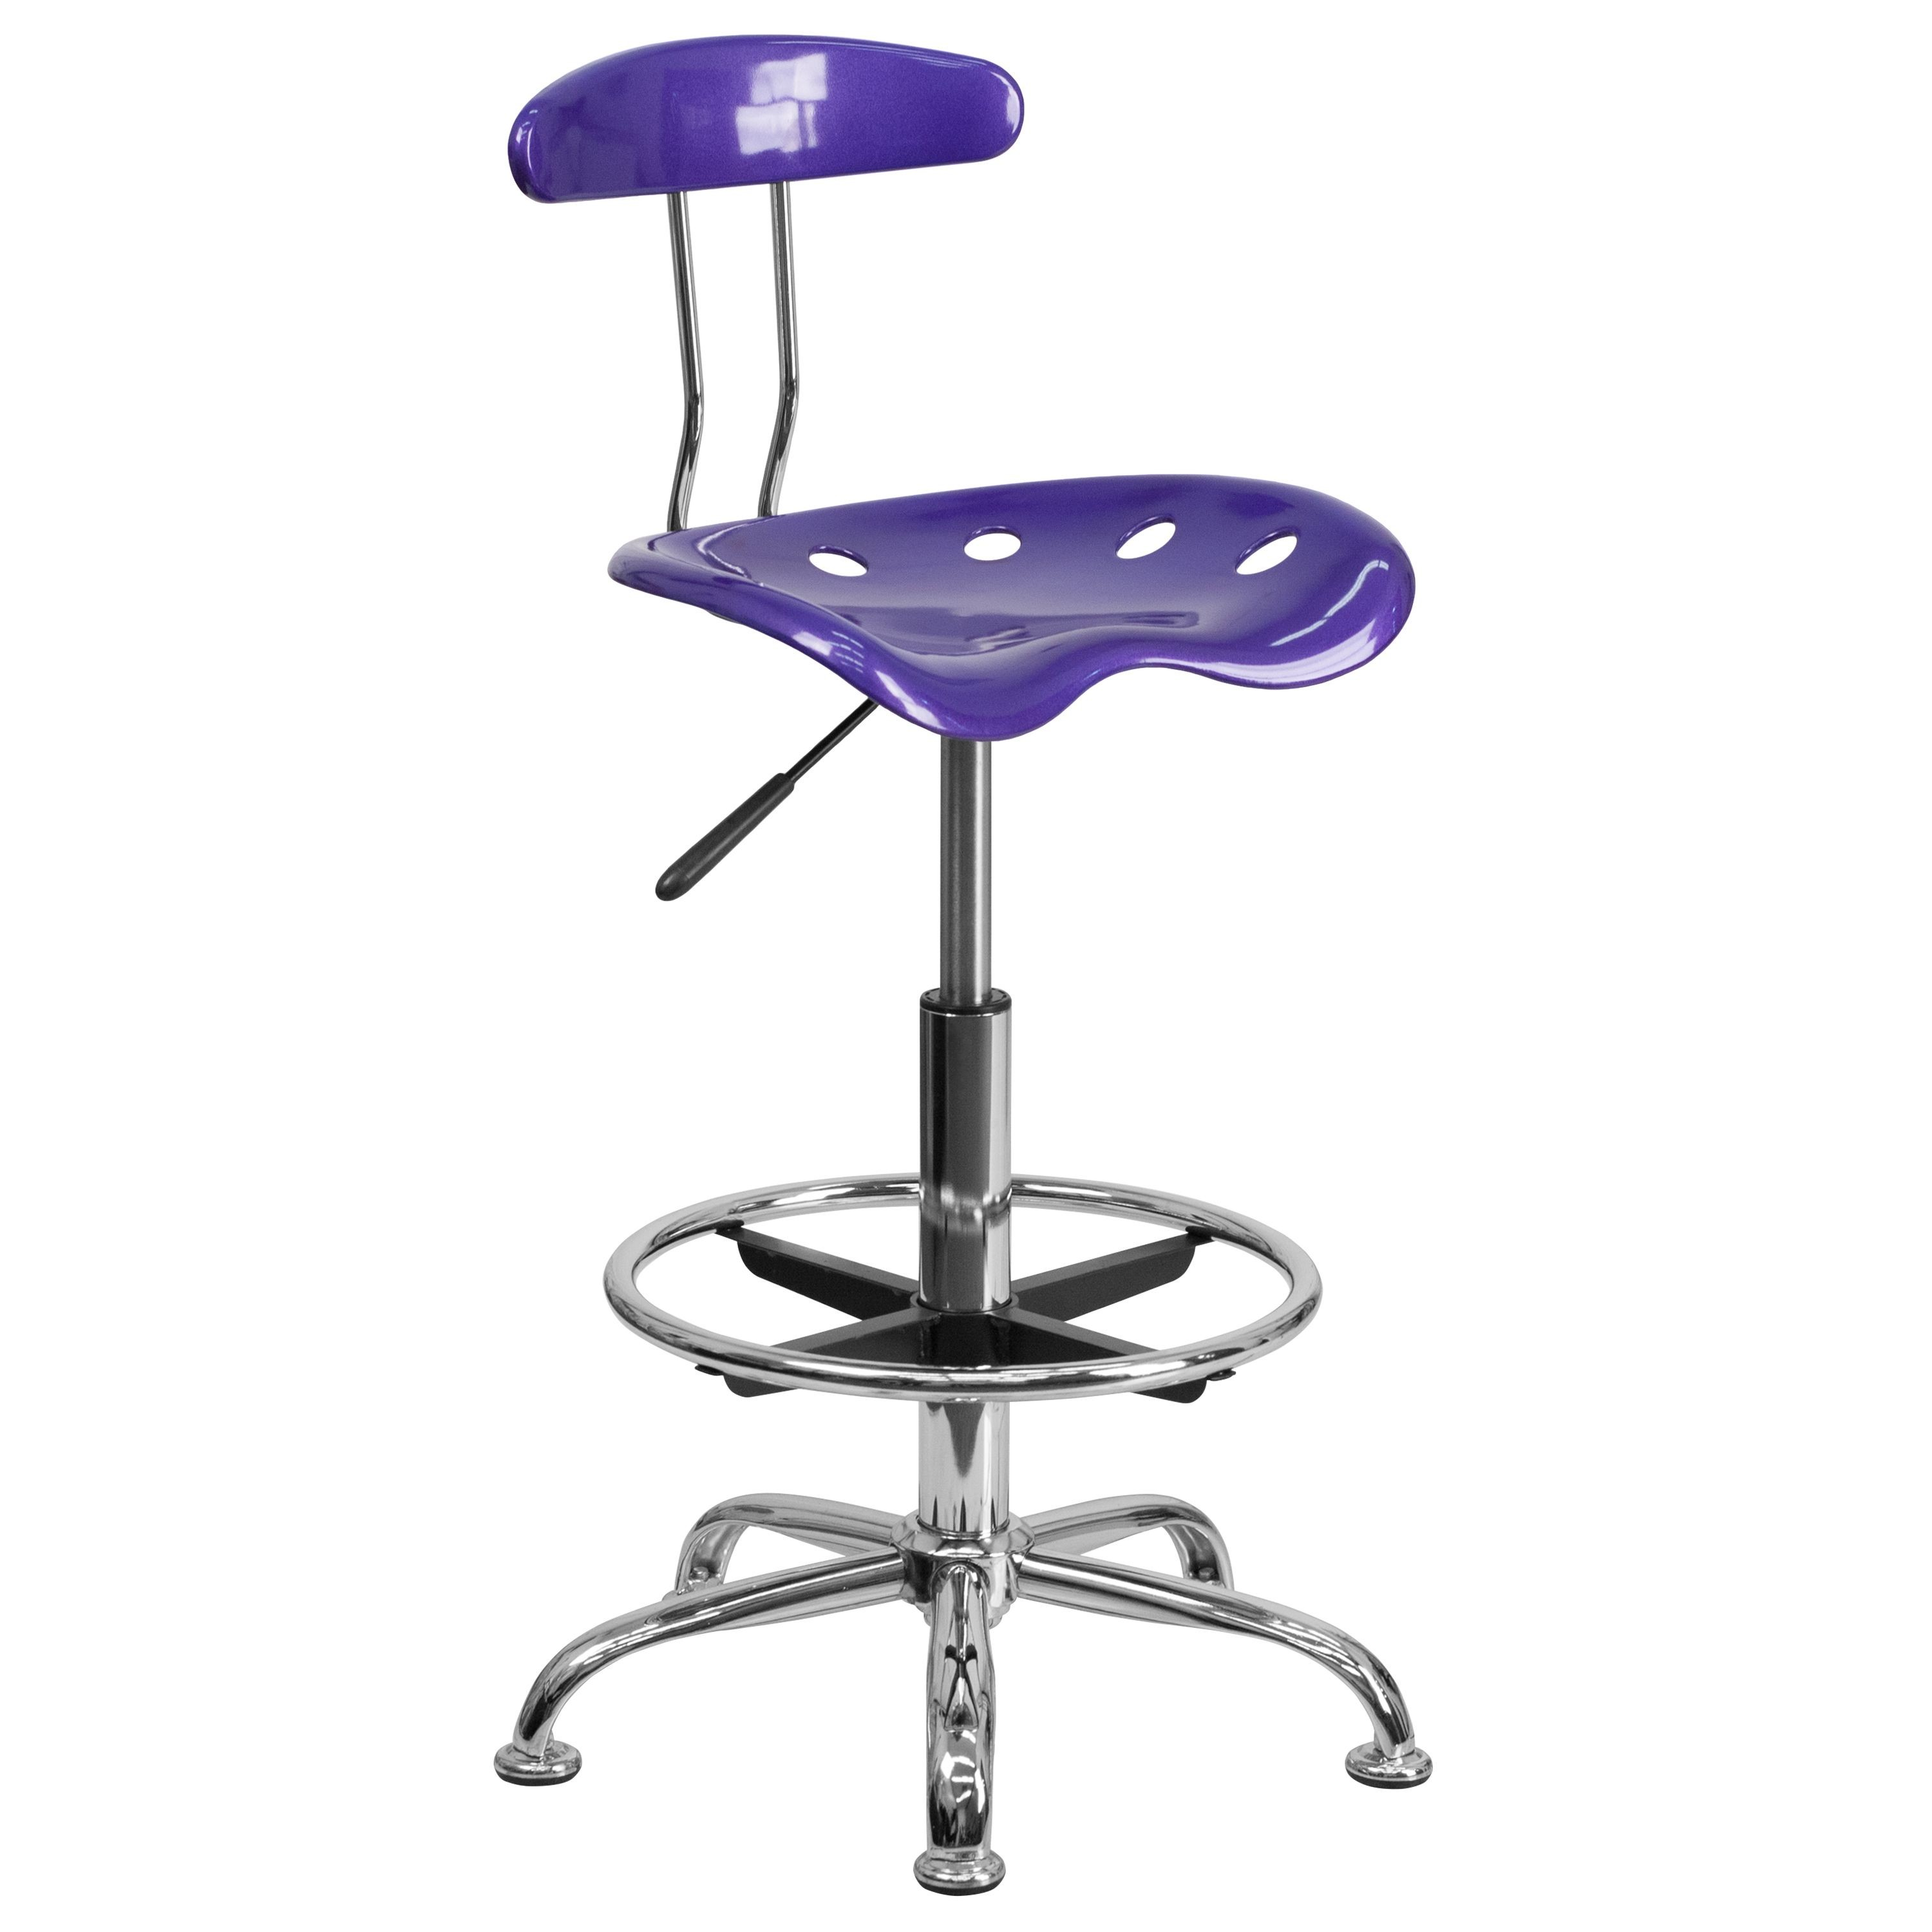 Flash Furniture LF-215-VIOLET-GG Vibrant Violet and Chrome Bar Height Drafting Stool with Tractor Seat